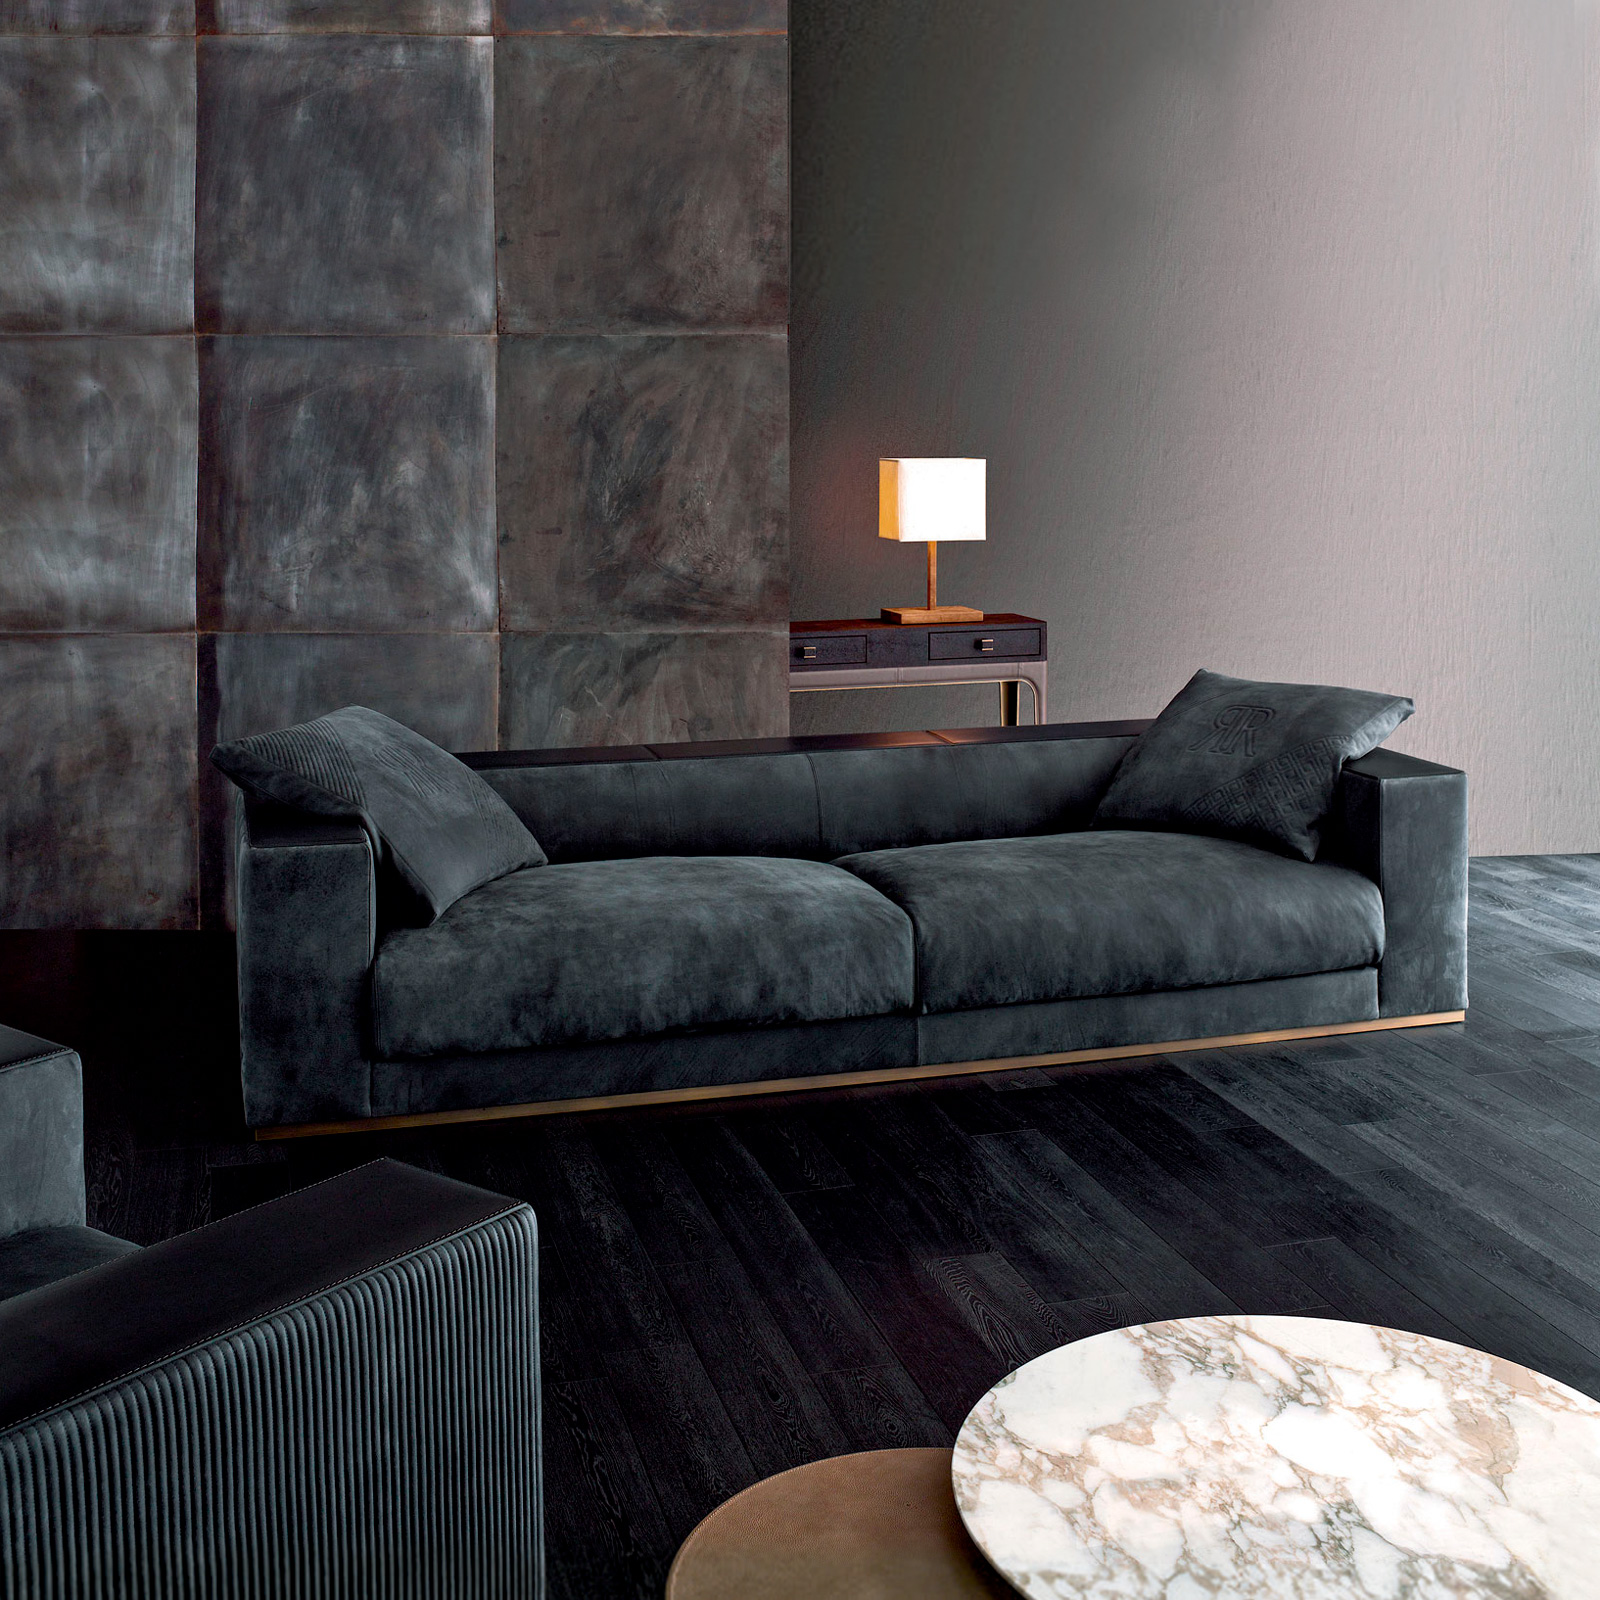 Luxury Italian Designer Vogue Sofa Italian Designer Luxury